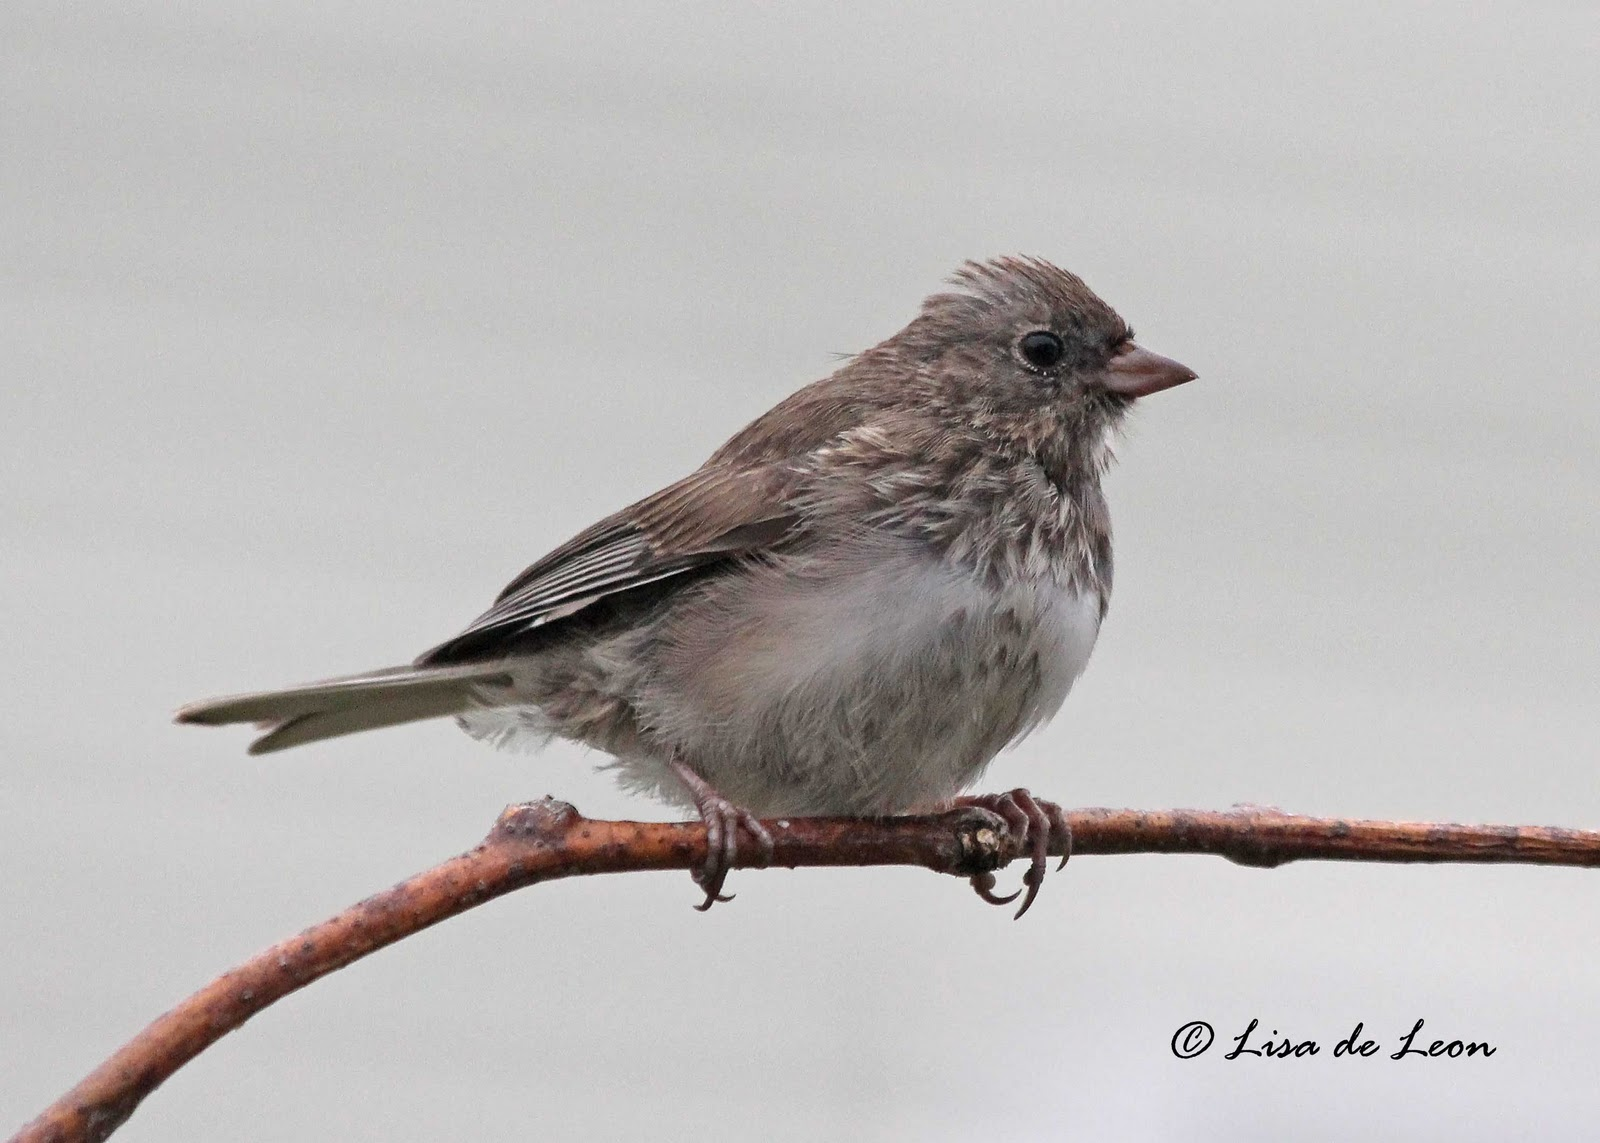 Birding with Lisa de Leon: Dark-eyed Junco - Juvenile